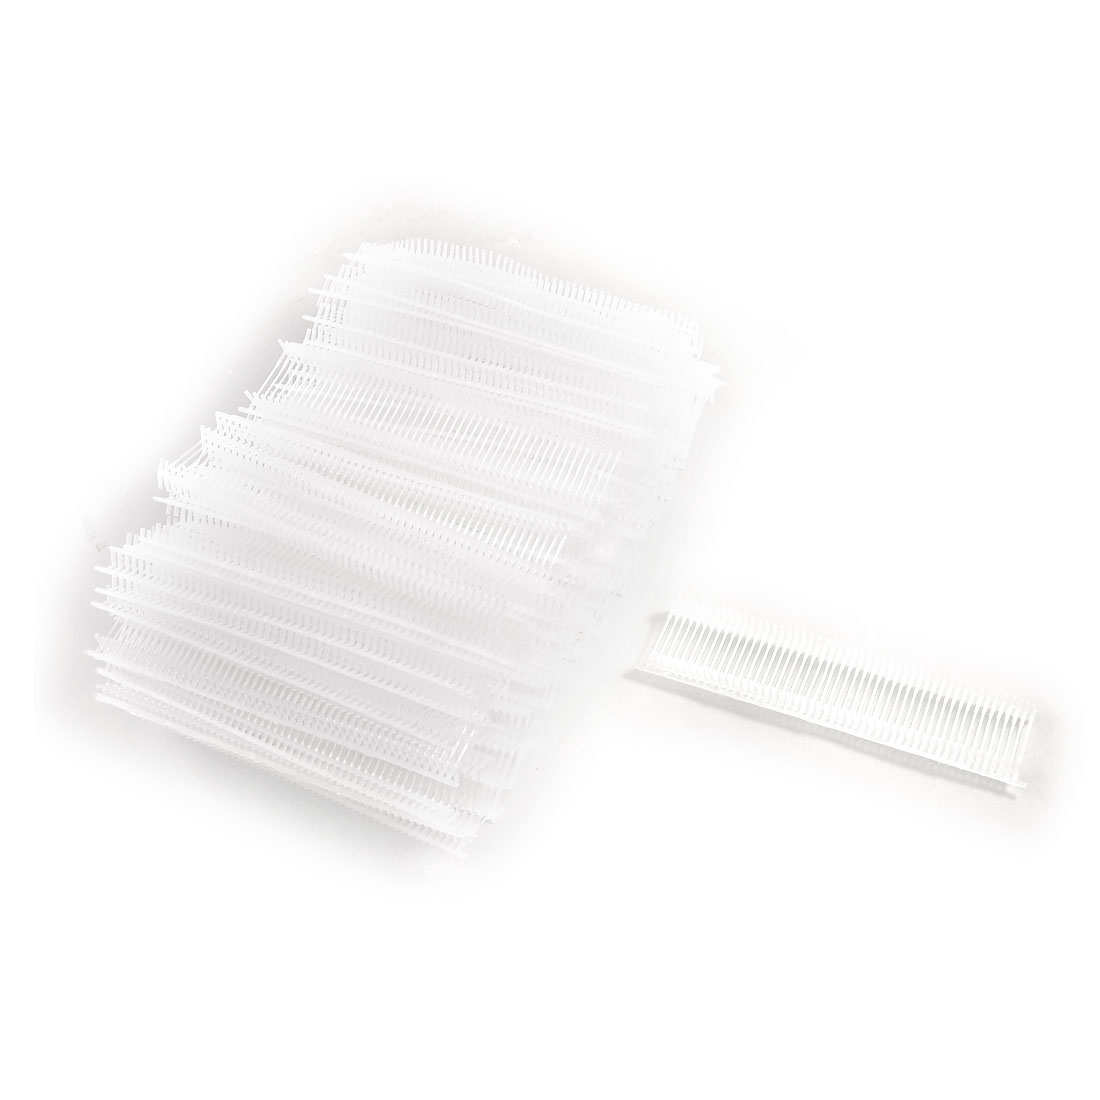 5000 Pcs Clear White Polypropylene Tag Pins 15mm Length for Tagging Gun